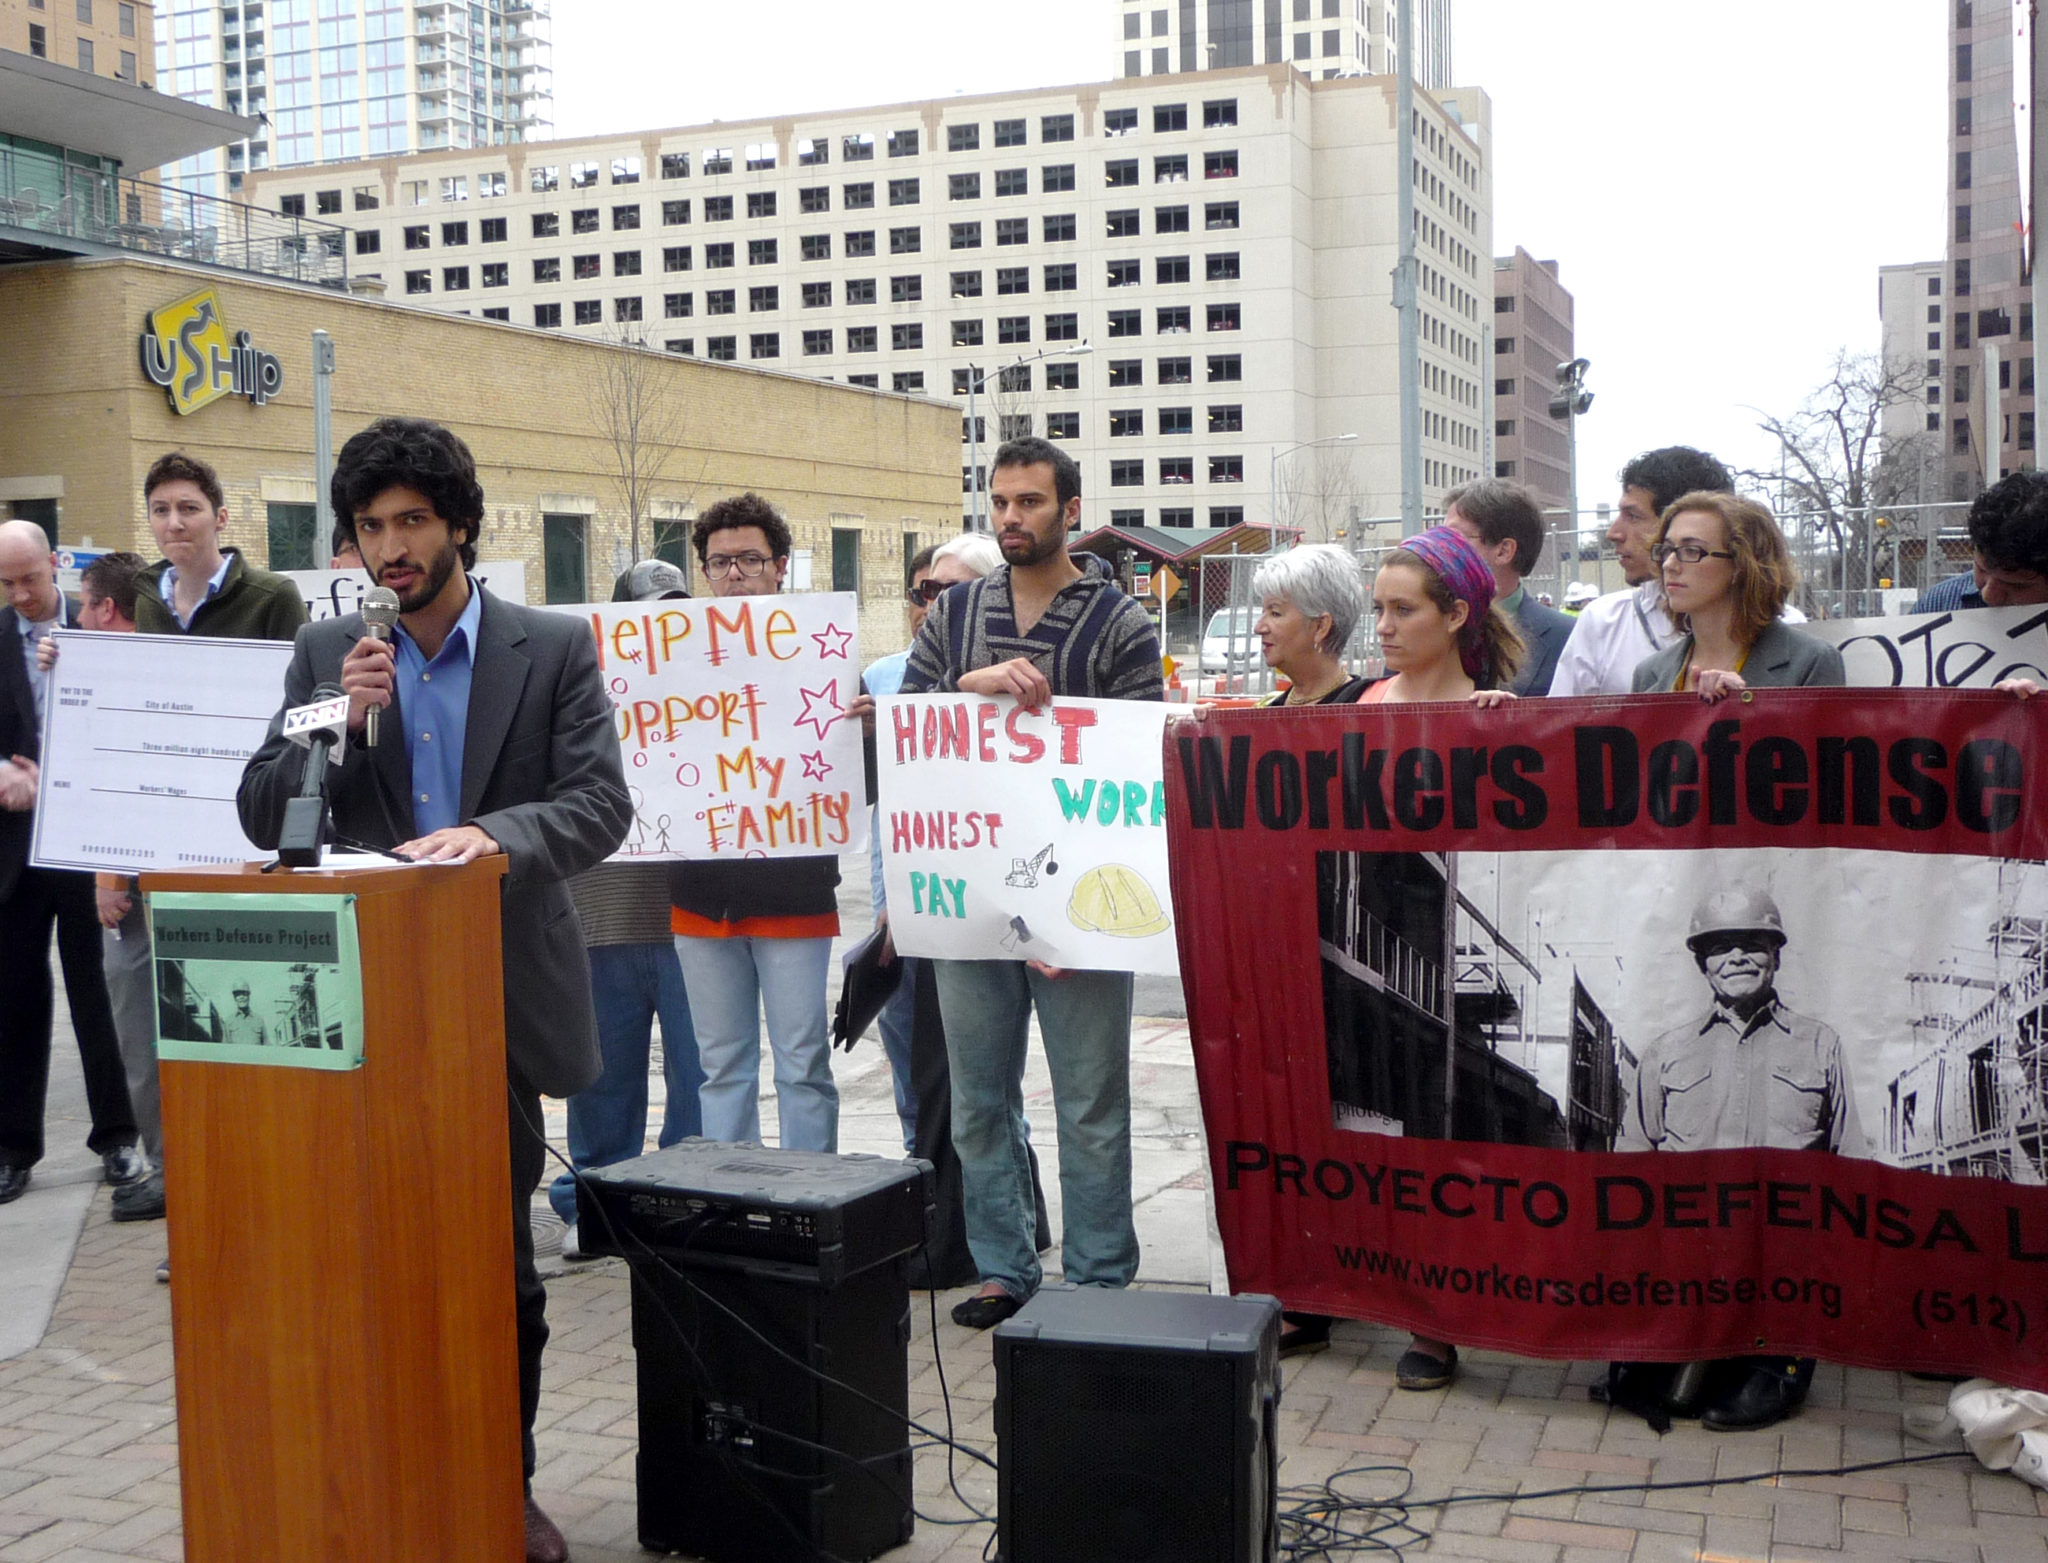 Workers Defense Project Business Liaison Greg Casar urges reform of Austin's incentive-giving system in front of the JW Marriott construction site in downtown Austin.